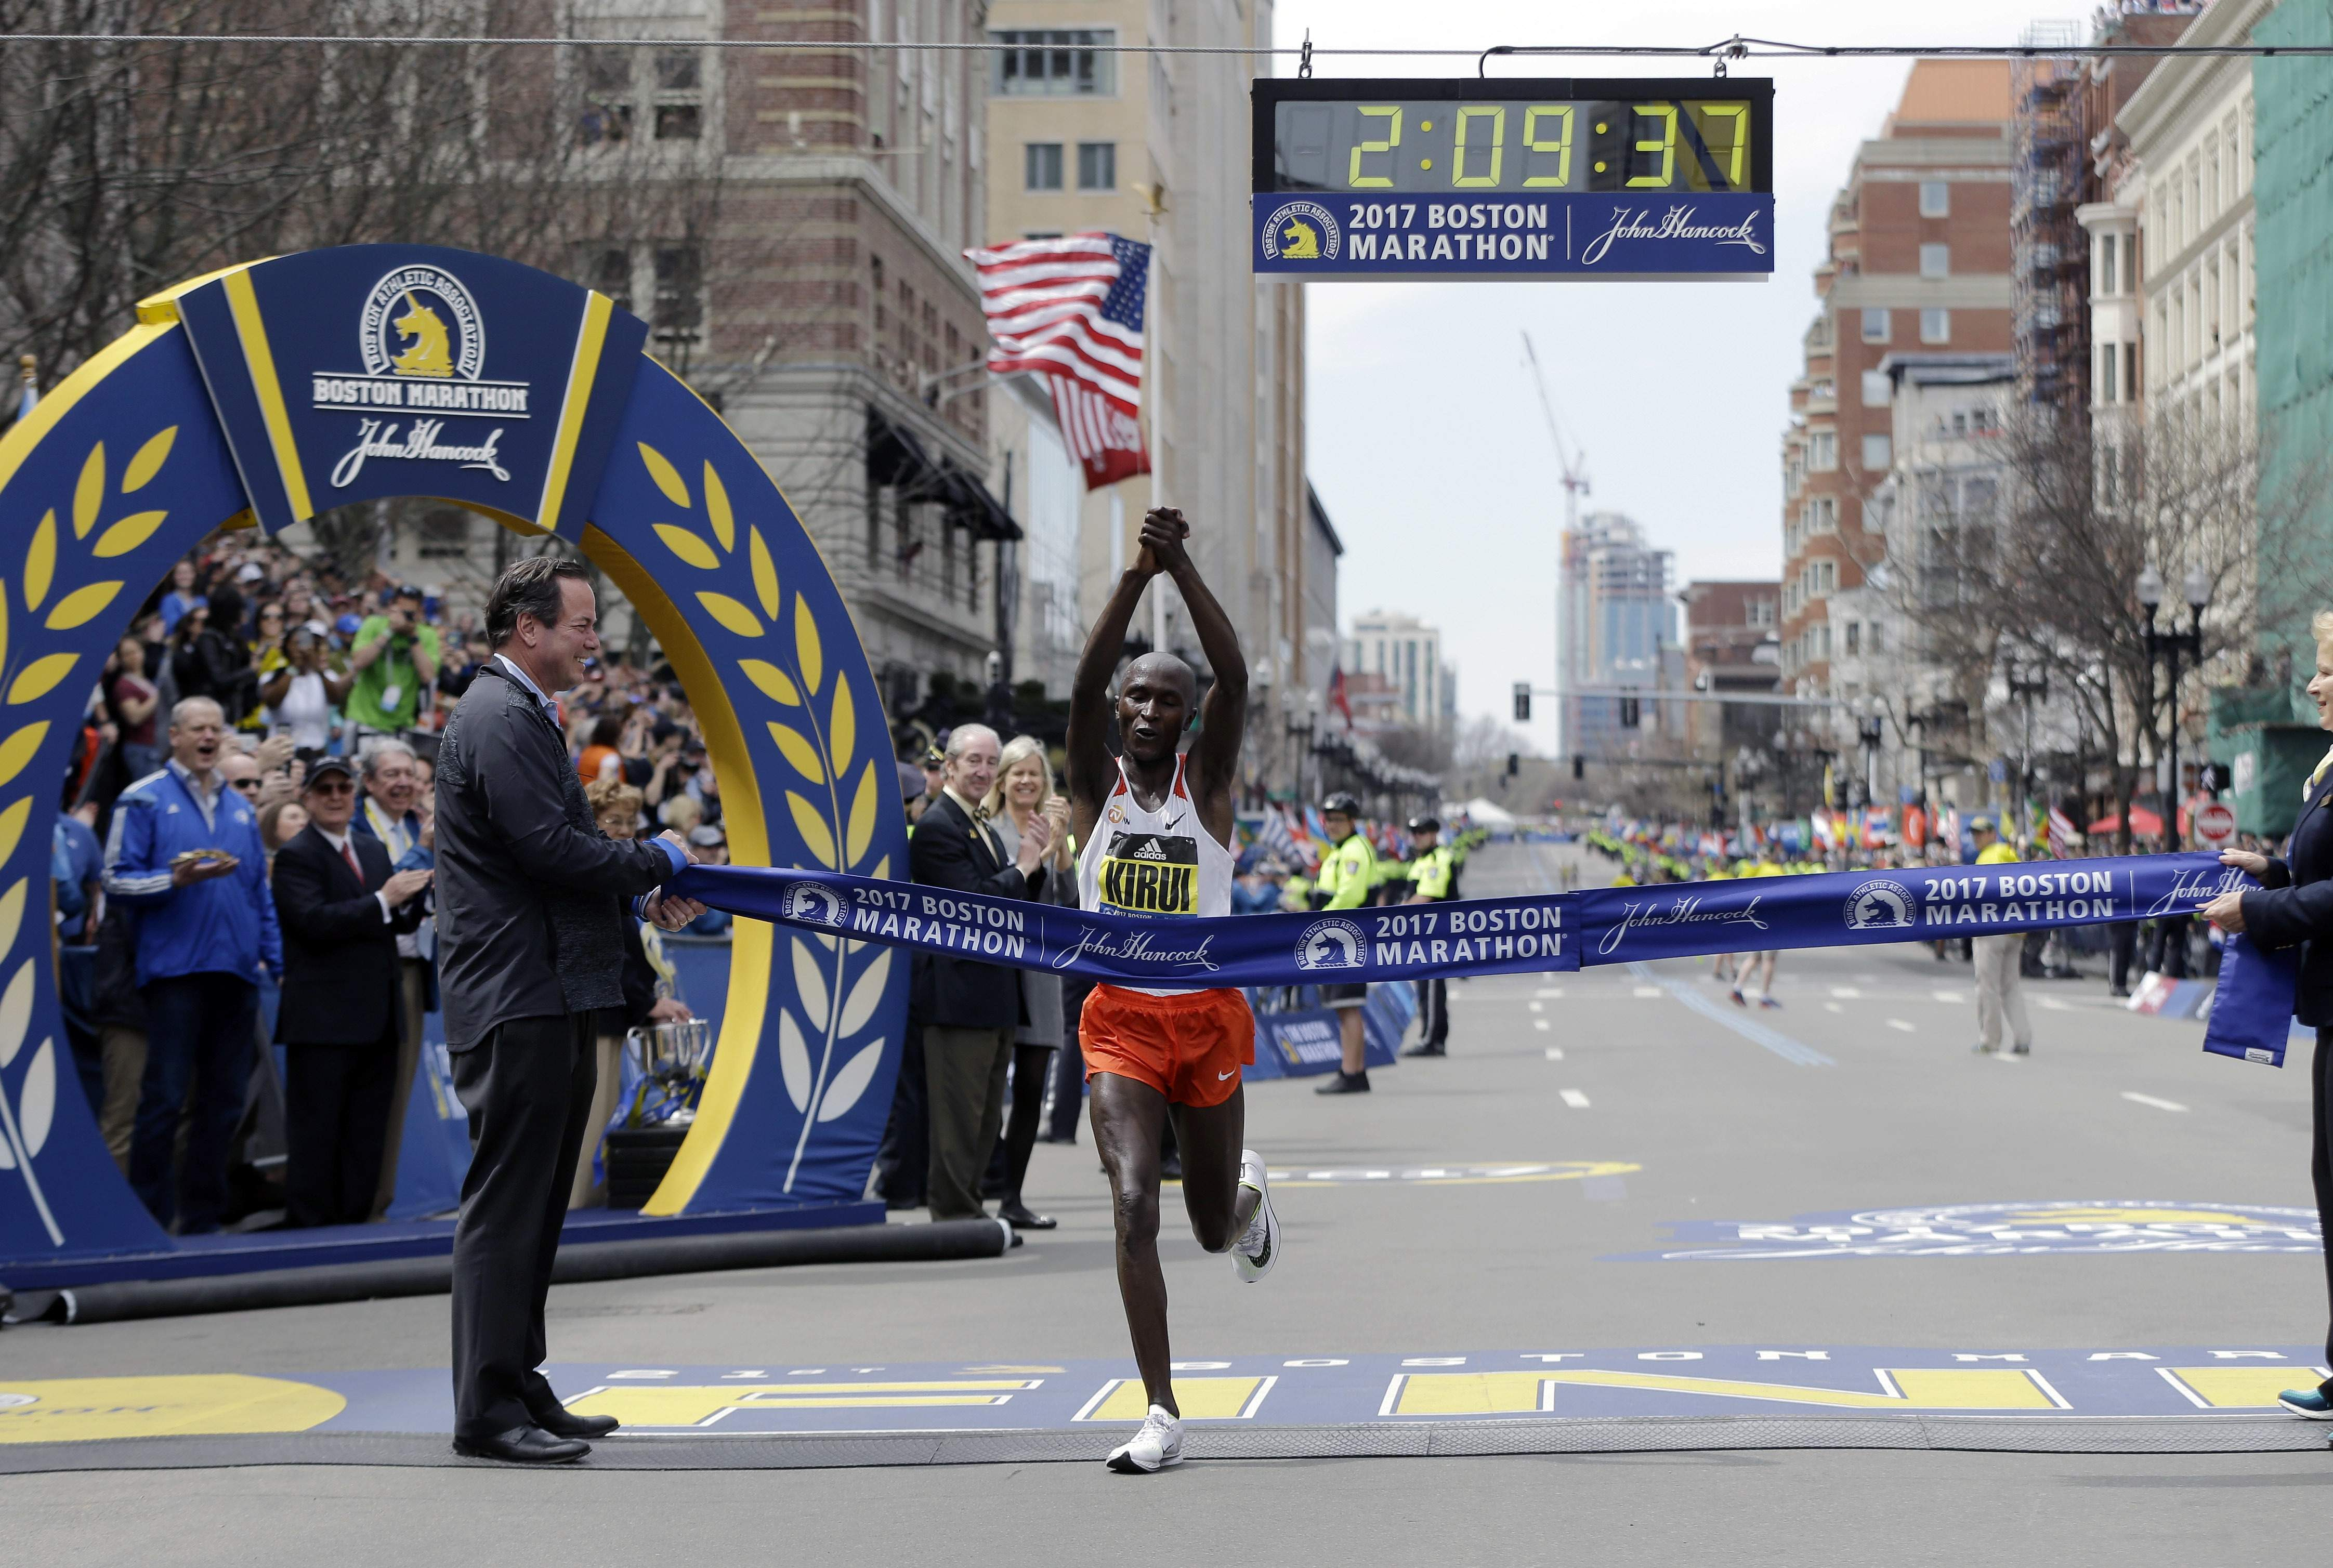 Geoffrey Kirui, of Kenya, crosses the finish line to win the 121st Boston Marathon on Monday, April 17, 2017, in Boston. THE ASSOCIATED PRESS